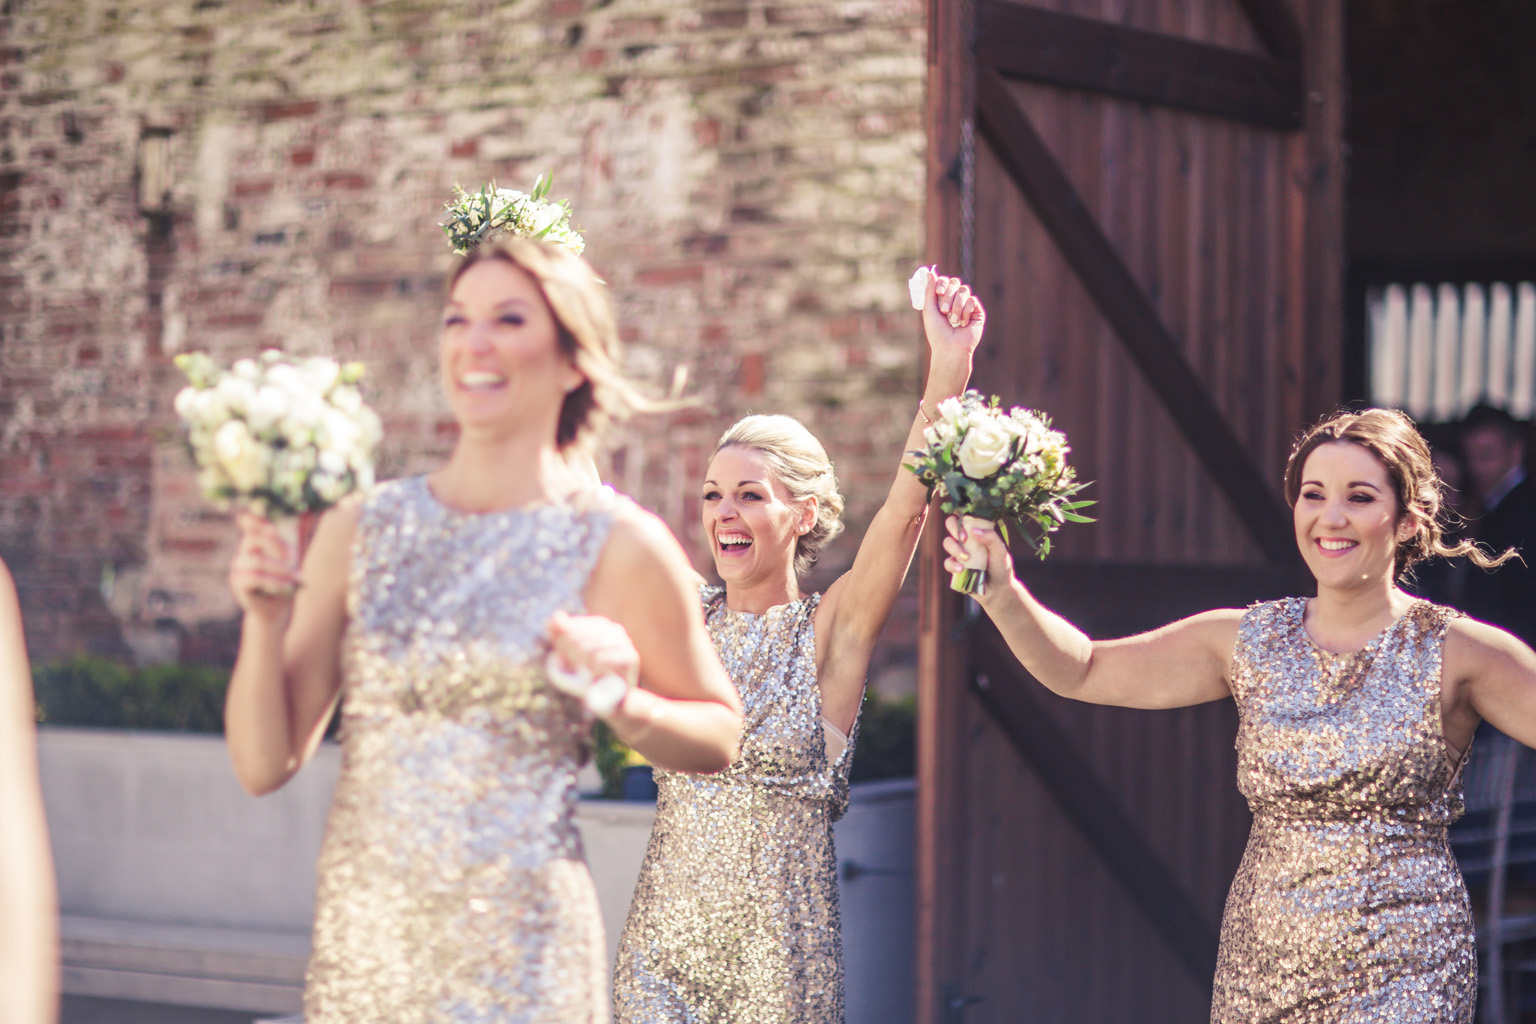 Bridesmaids Celebrate at The Normans. Photo by www.inspirephotos.co.uk